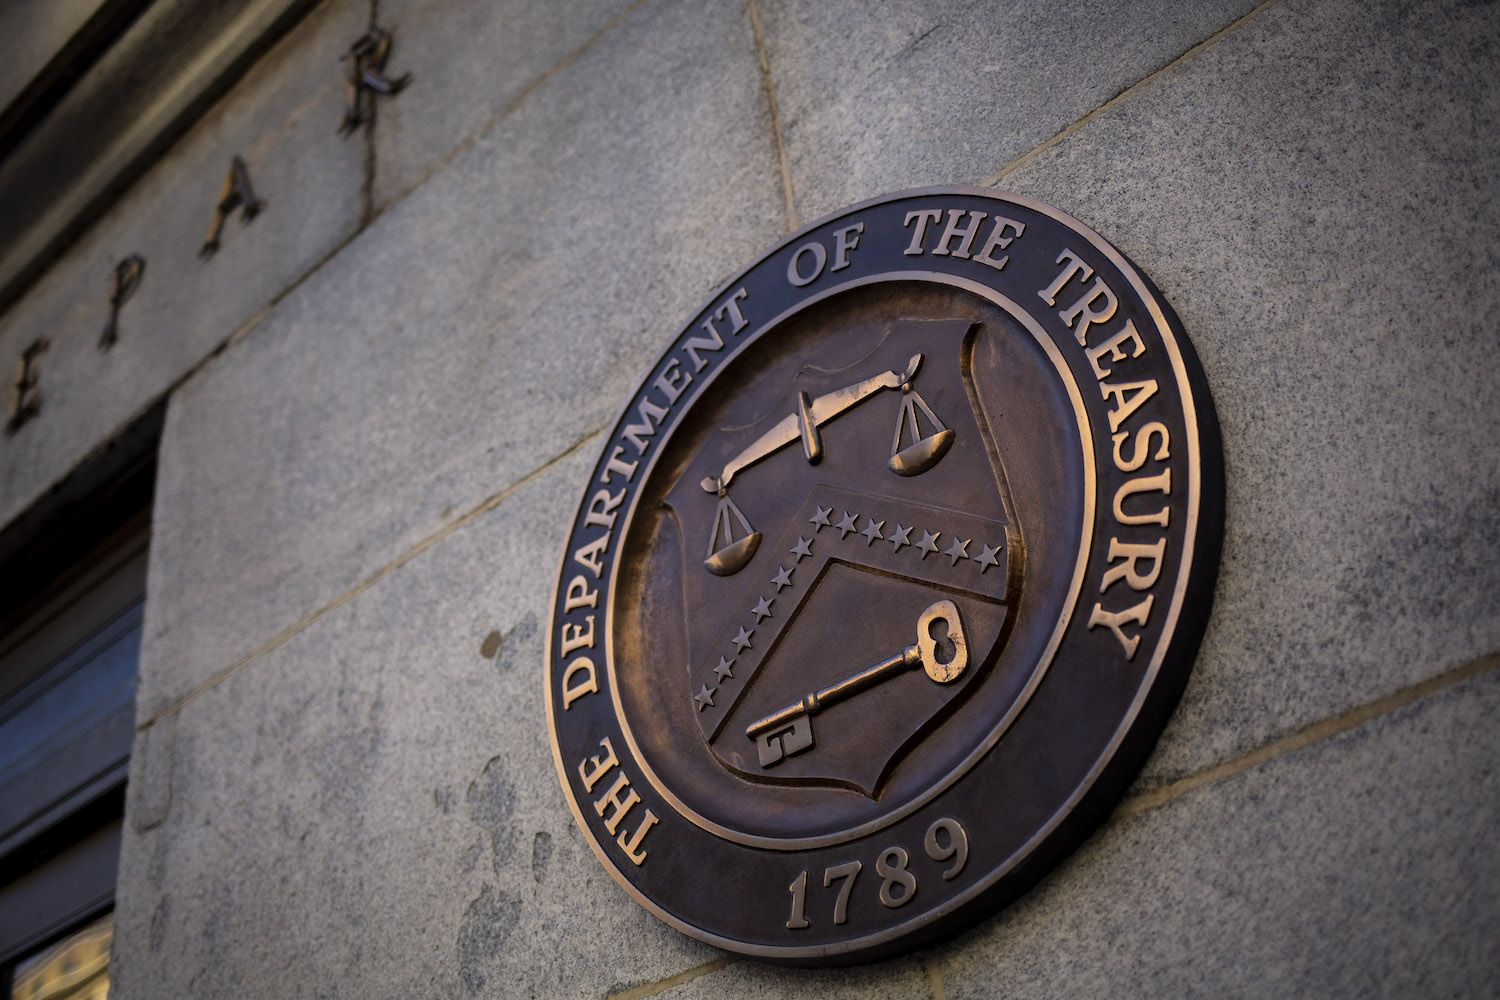 IRS, in Boon to Crypto, Will Reportedly Ignore Infrastructure Bill's Definition of Broker: Bitcoin Rises